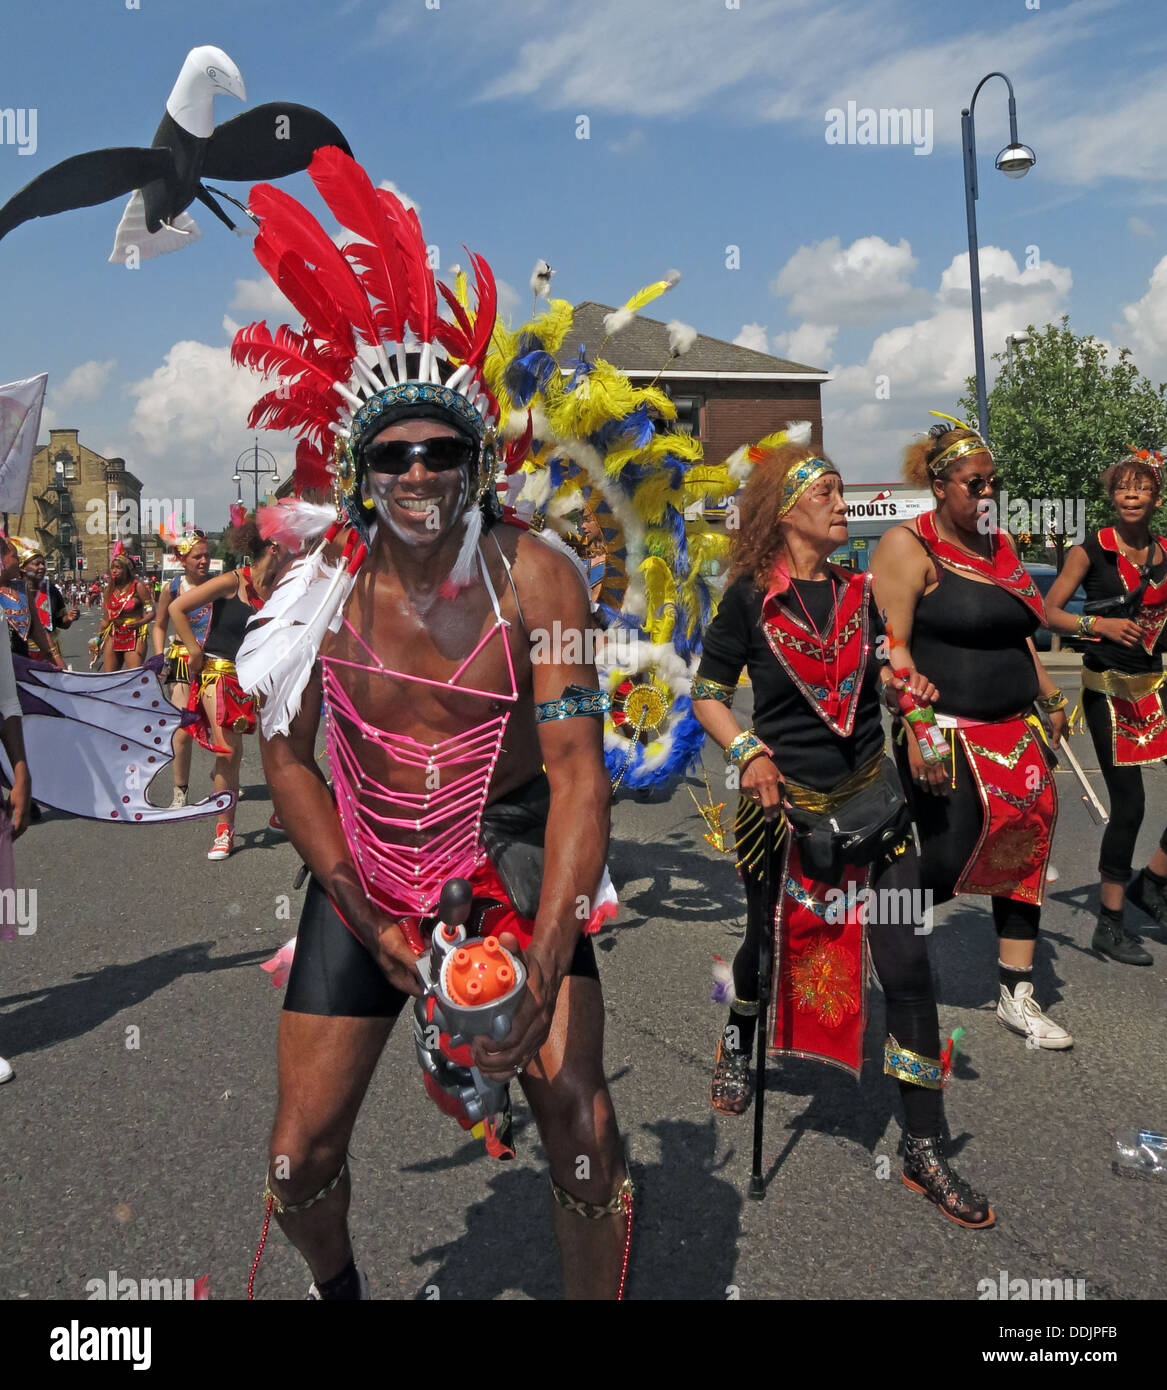 Kirklees,council,local,authority,LA,West,Yorkshire,England,English,UK,GB,Great,Britain,British,town,centre,Saturday,13th,July,event,HACCT,office,African-Caribbean,African,Caribbean,Afro,dancer,dancers,Masqueraders,costume,colourful,Hudawi,trust,diversity,diverse,events,leisure,red,activity,Gotonysmith,sun,sunny,day,summer,center,13/07/2013,Greenhead,Park,Afro-Caribbean,costumes,colorful,culture,cultural,streets,parades,jab,jabs,jab-jabs,St,Johns,Rd,from,Willow,Lane,to,John,William,St,Johns,Rd,Market,Place,Cloth,Hall,St,from,Market,Place,to,St,from,Cloth,Hall,St,to,Westgate,from,to,Trinity,St,johns,Yorks,WestYorks,HD11NU,1NU,headdress,head,dress,head-dress,Buy Pictures of,Buy Images Of